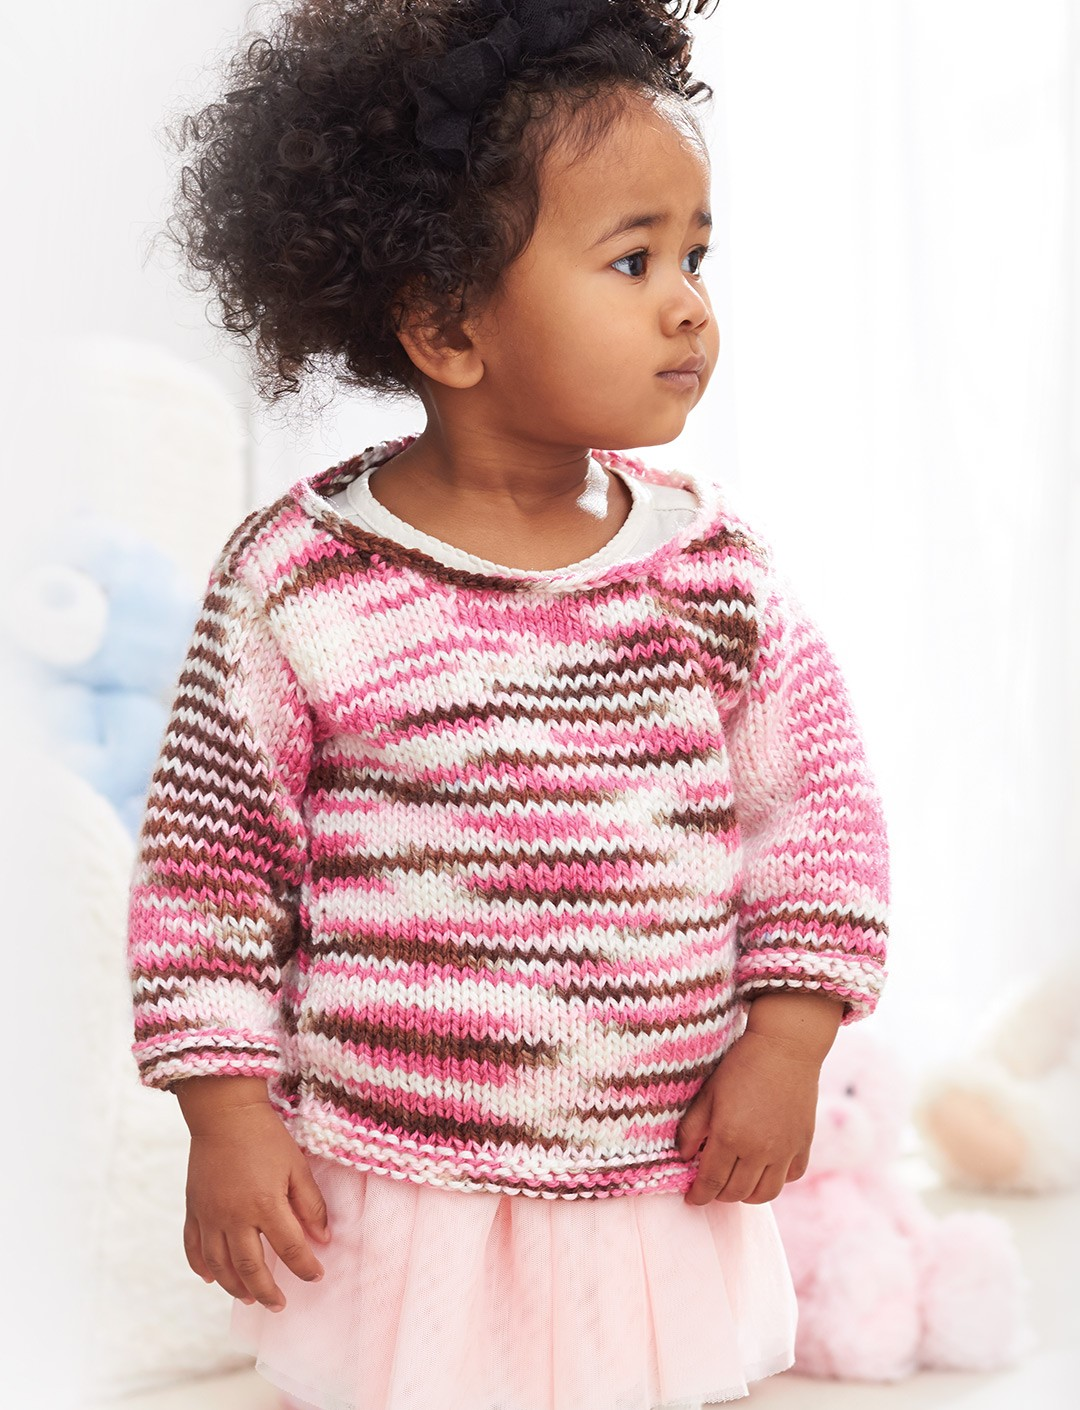 caron sweet and simple pullover knit pattern yarnspirations. Black Bedroom Furniture Sets. Home Design Ideas